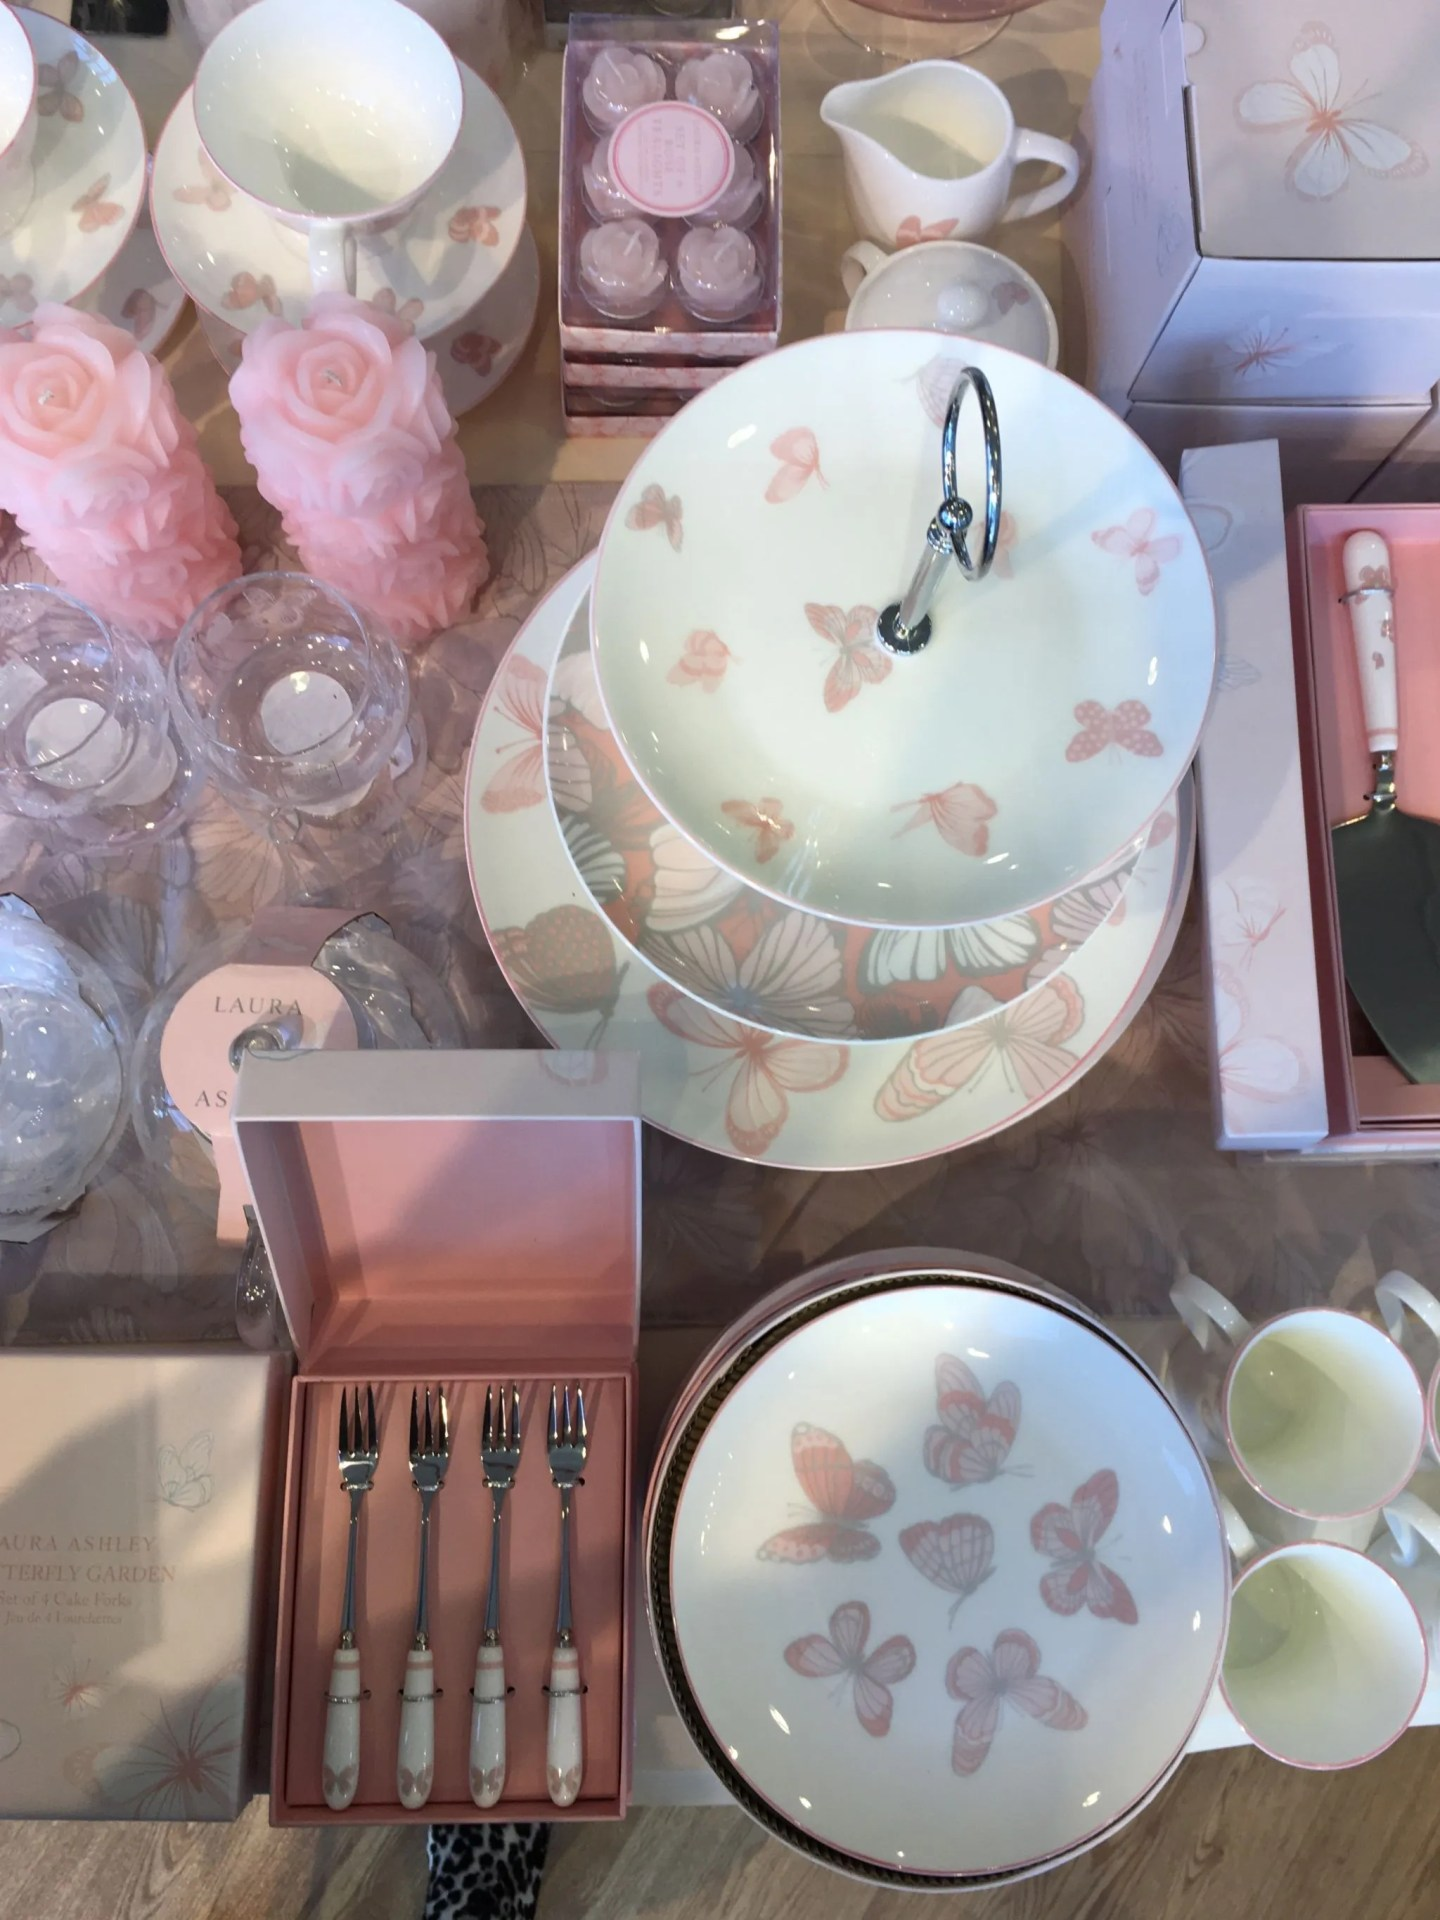 what-lizzy-loves-mothers-day-gift-guide-laura-ashley-pink-table-setting